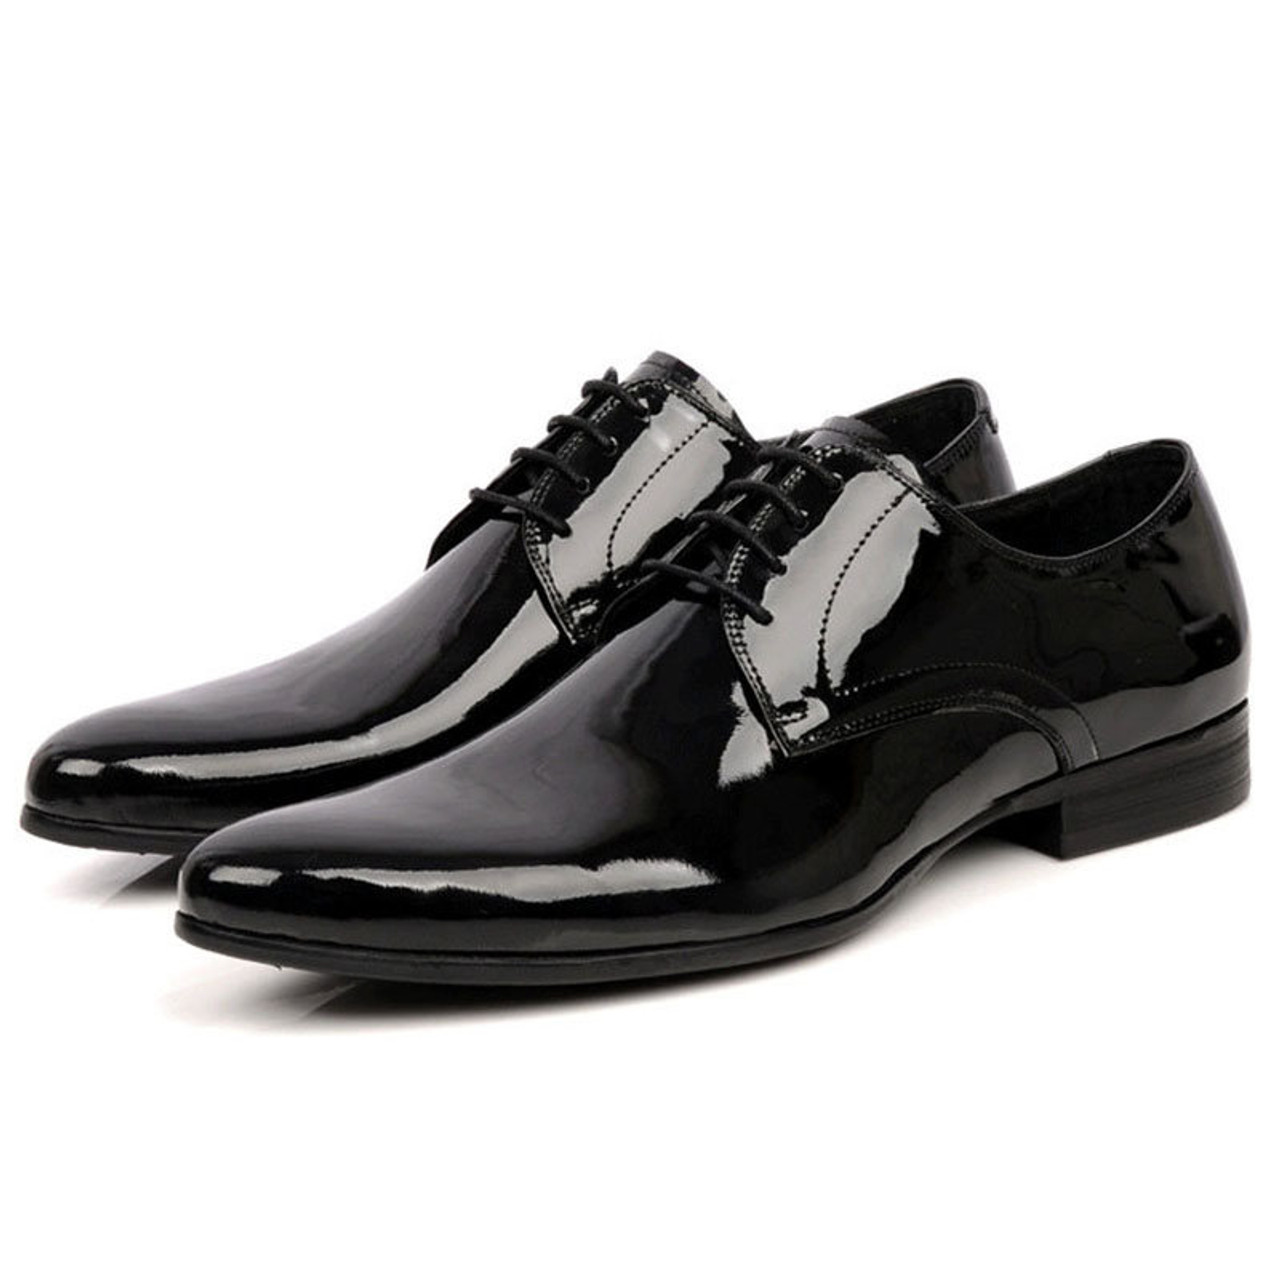 mens black patent leather shoes mens tuxedo shoes for